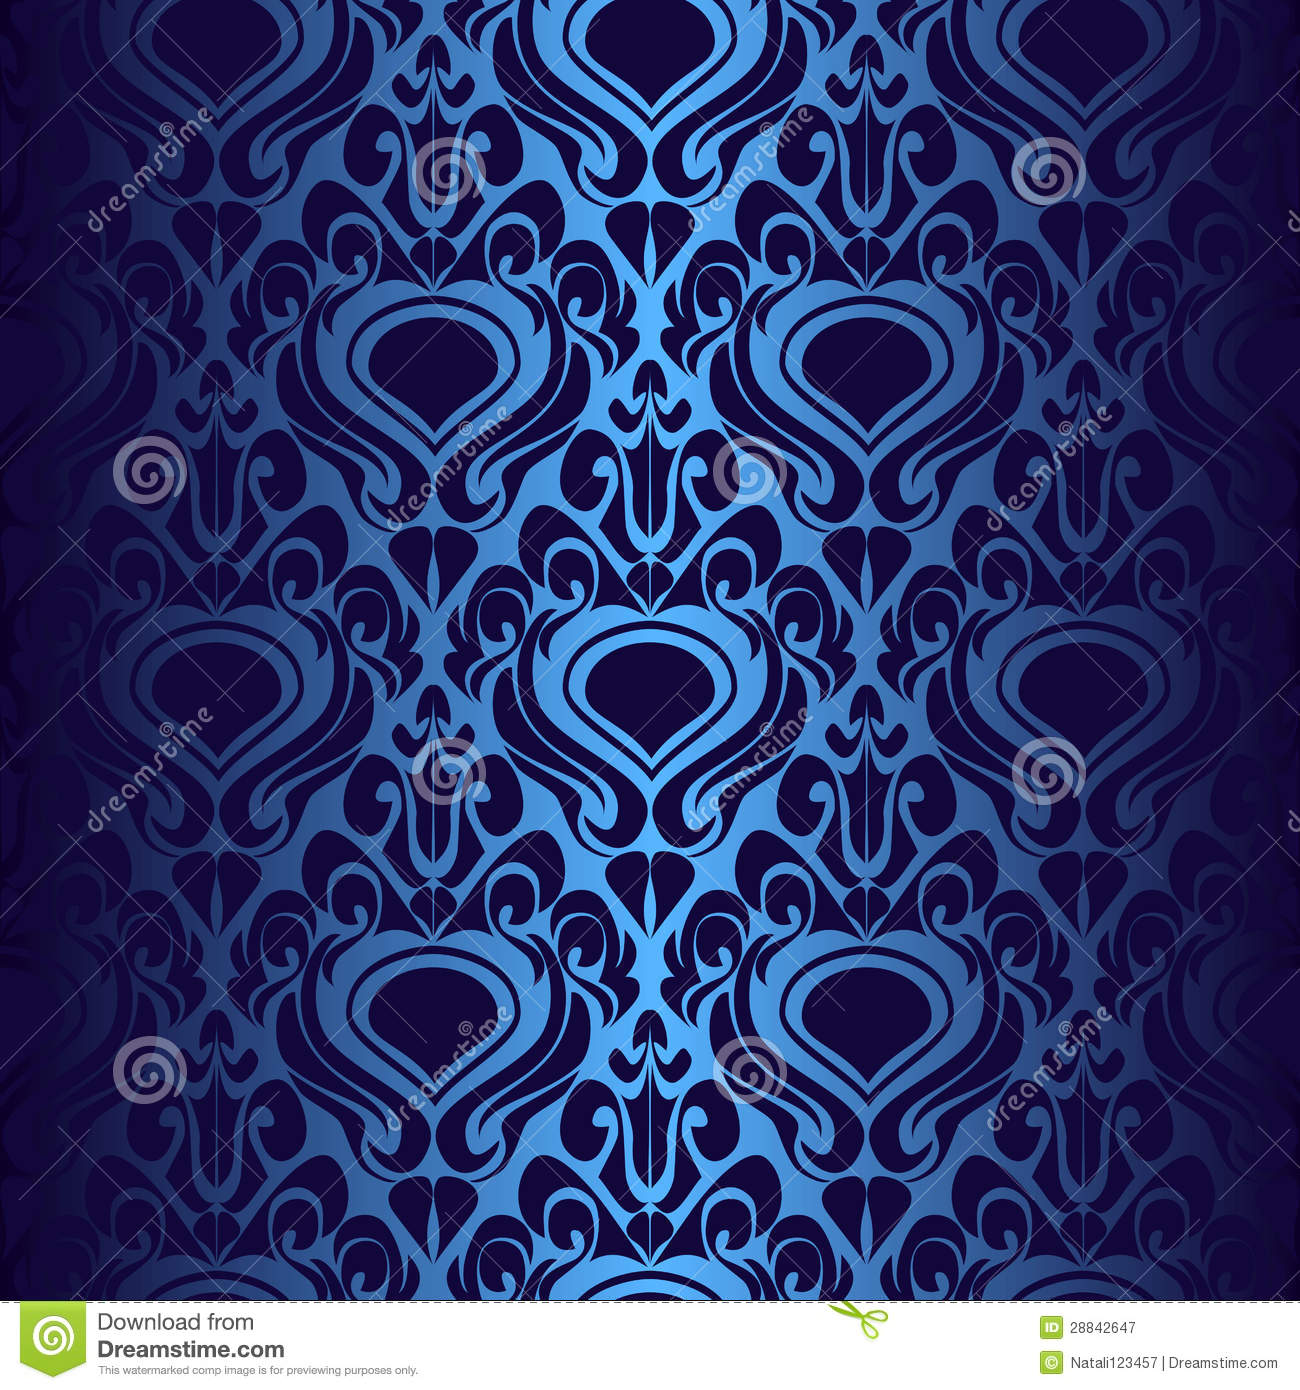 Royalty Free Wallpaper Seamless dark blue wallpaper